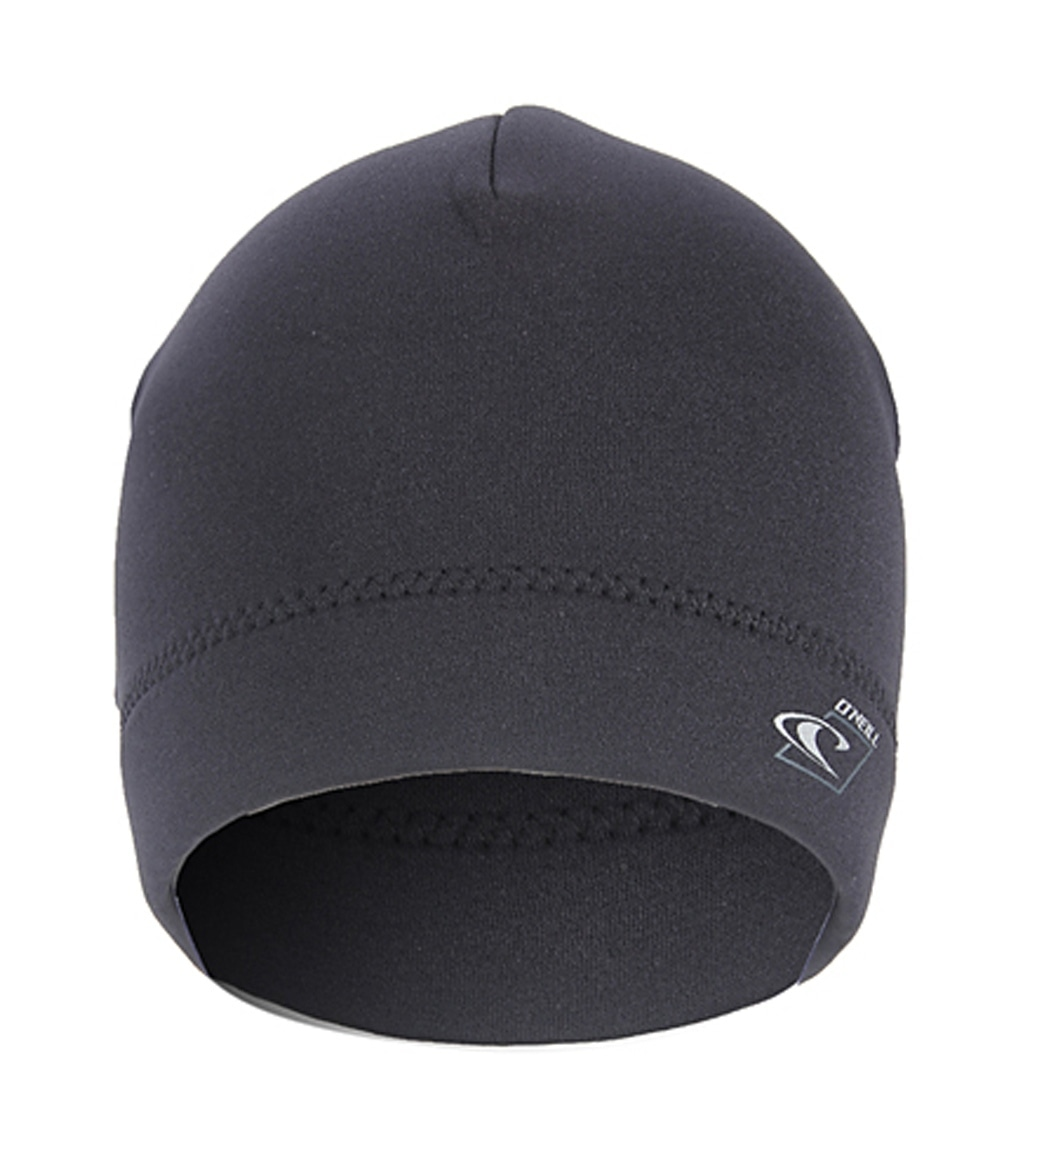 O Neill Neoprene Beanie 2MM Wetsuit Neoprene Cap at SwimOutlet.com 1e421d24aa3